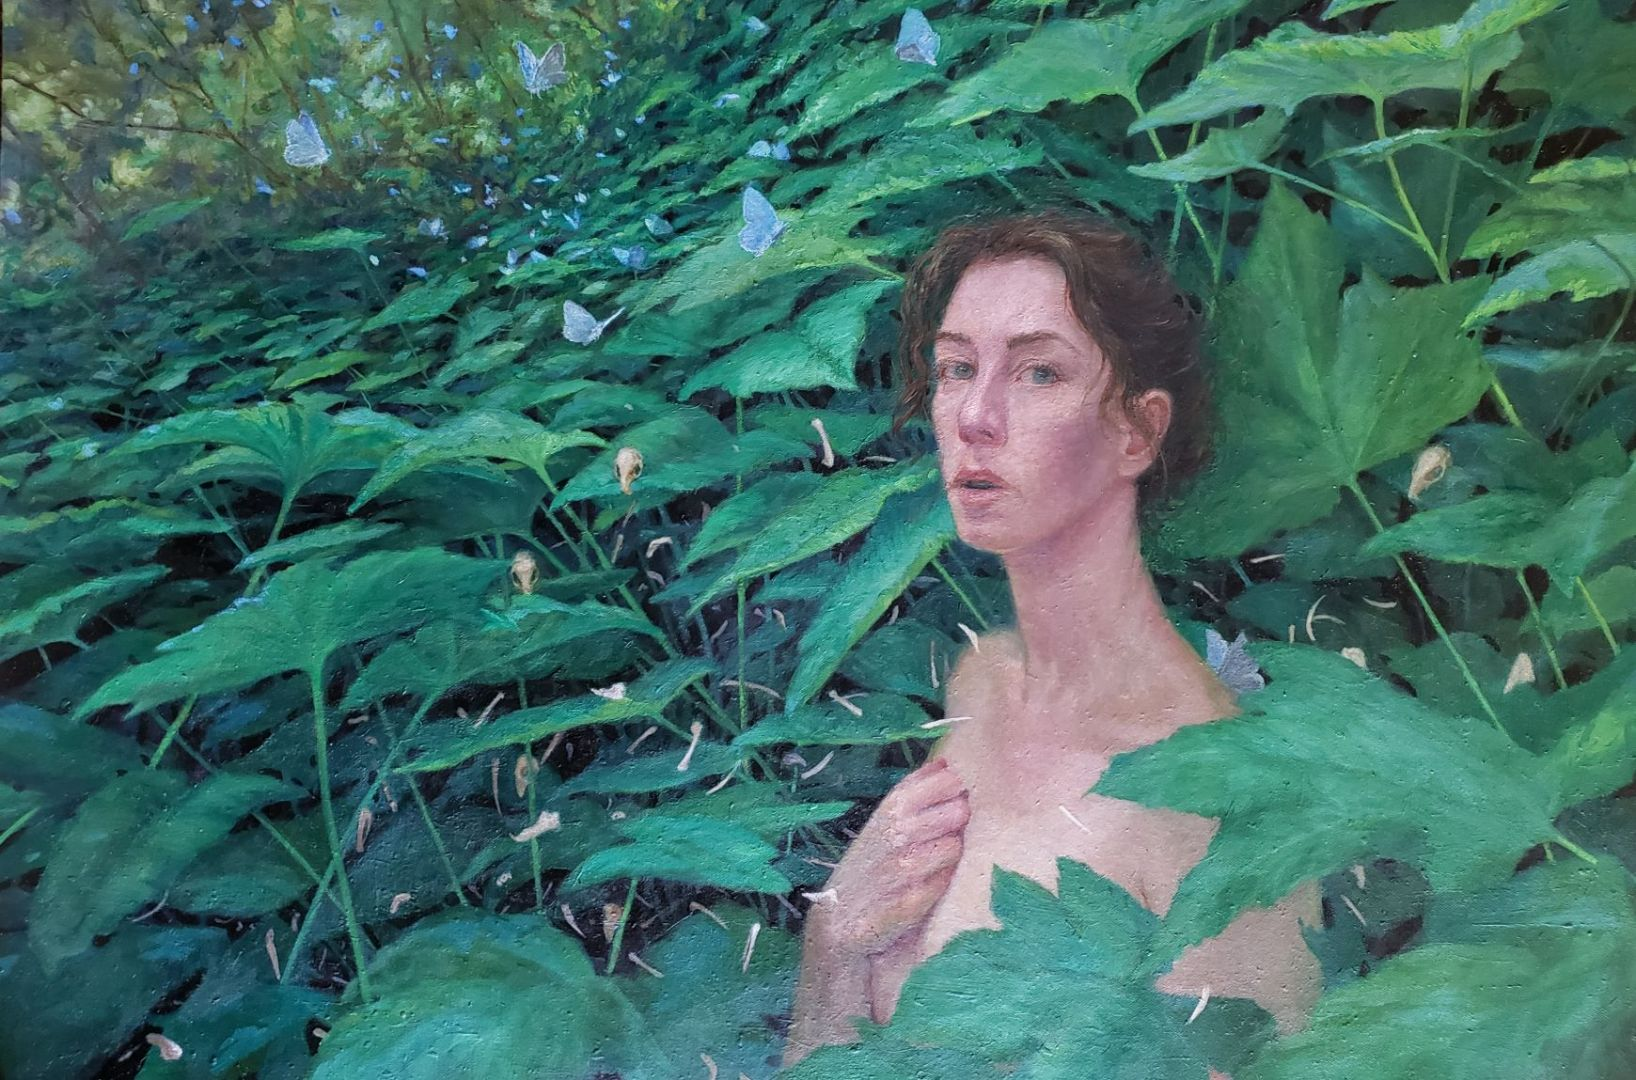 Contemporary Realism in the Work of Leona Gamble